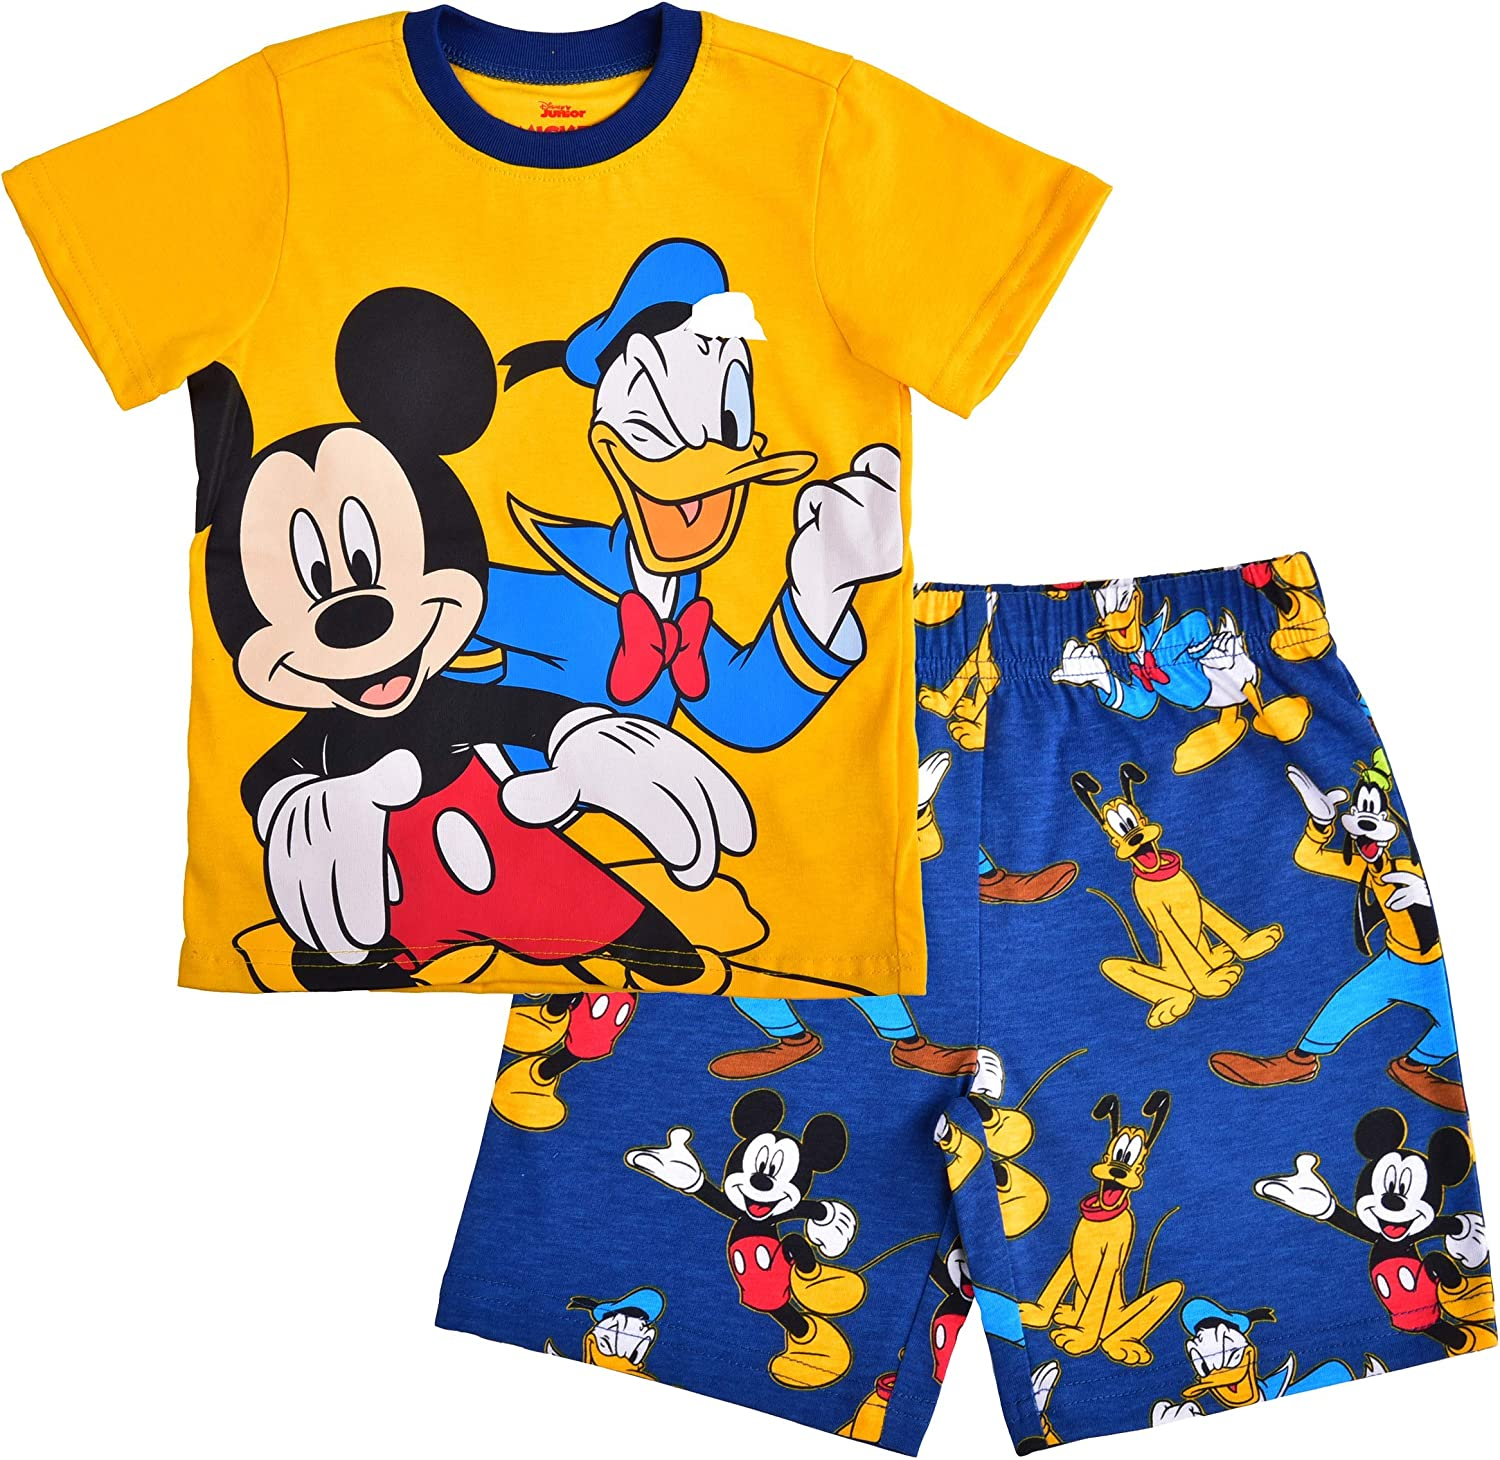 Disney Boy's 2-Piece Mickey and Friends Tee and Short Set